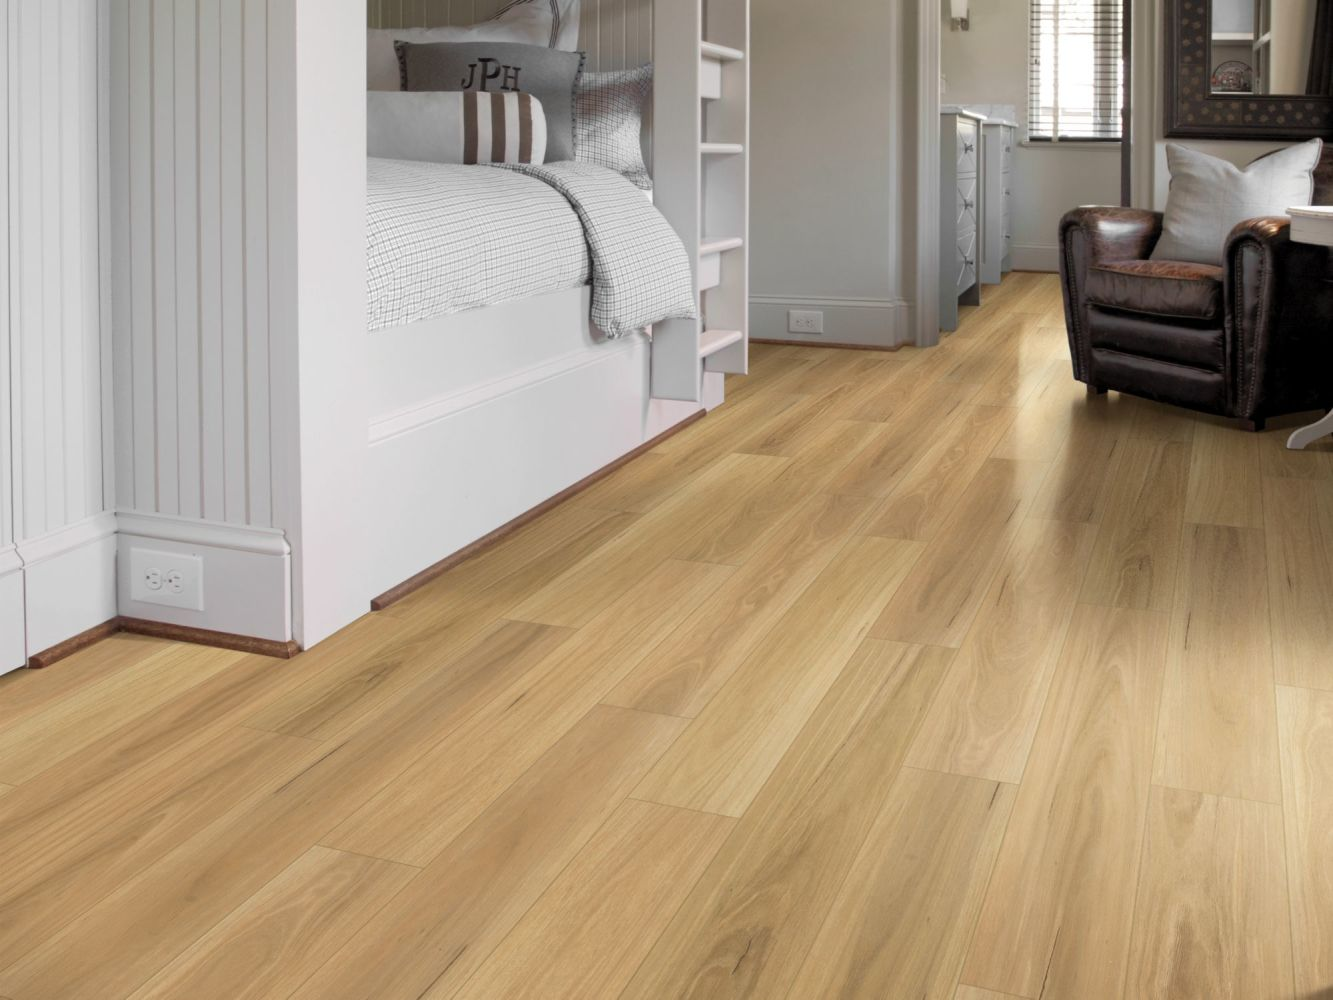 Shaw Floors Resilient Property Solutions Prominence Plus Eucalyptus 00694_VE381